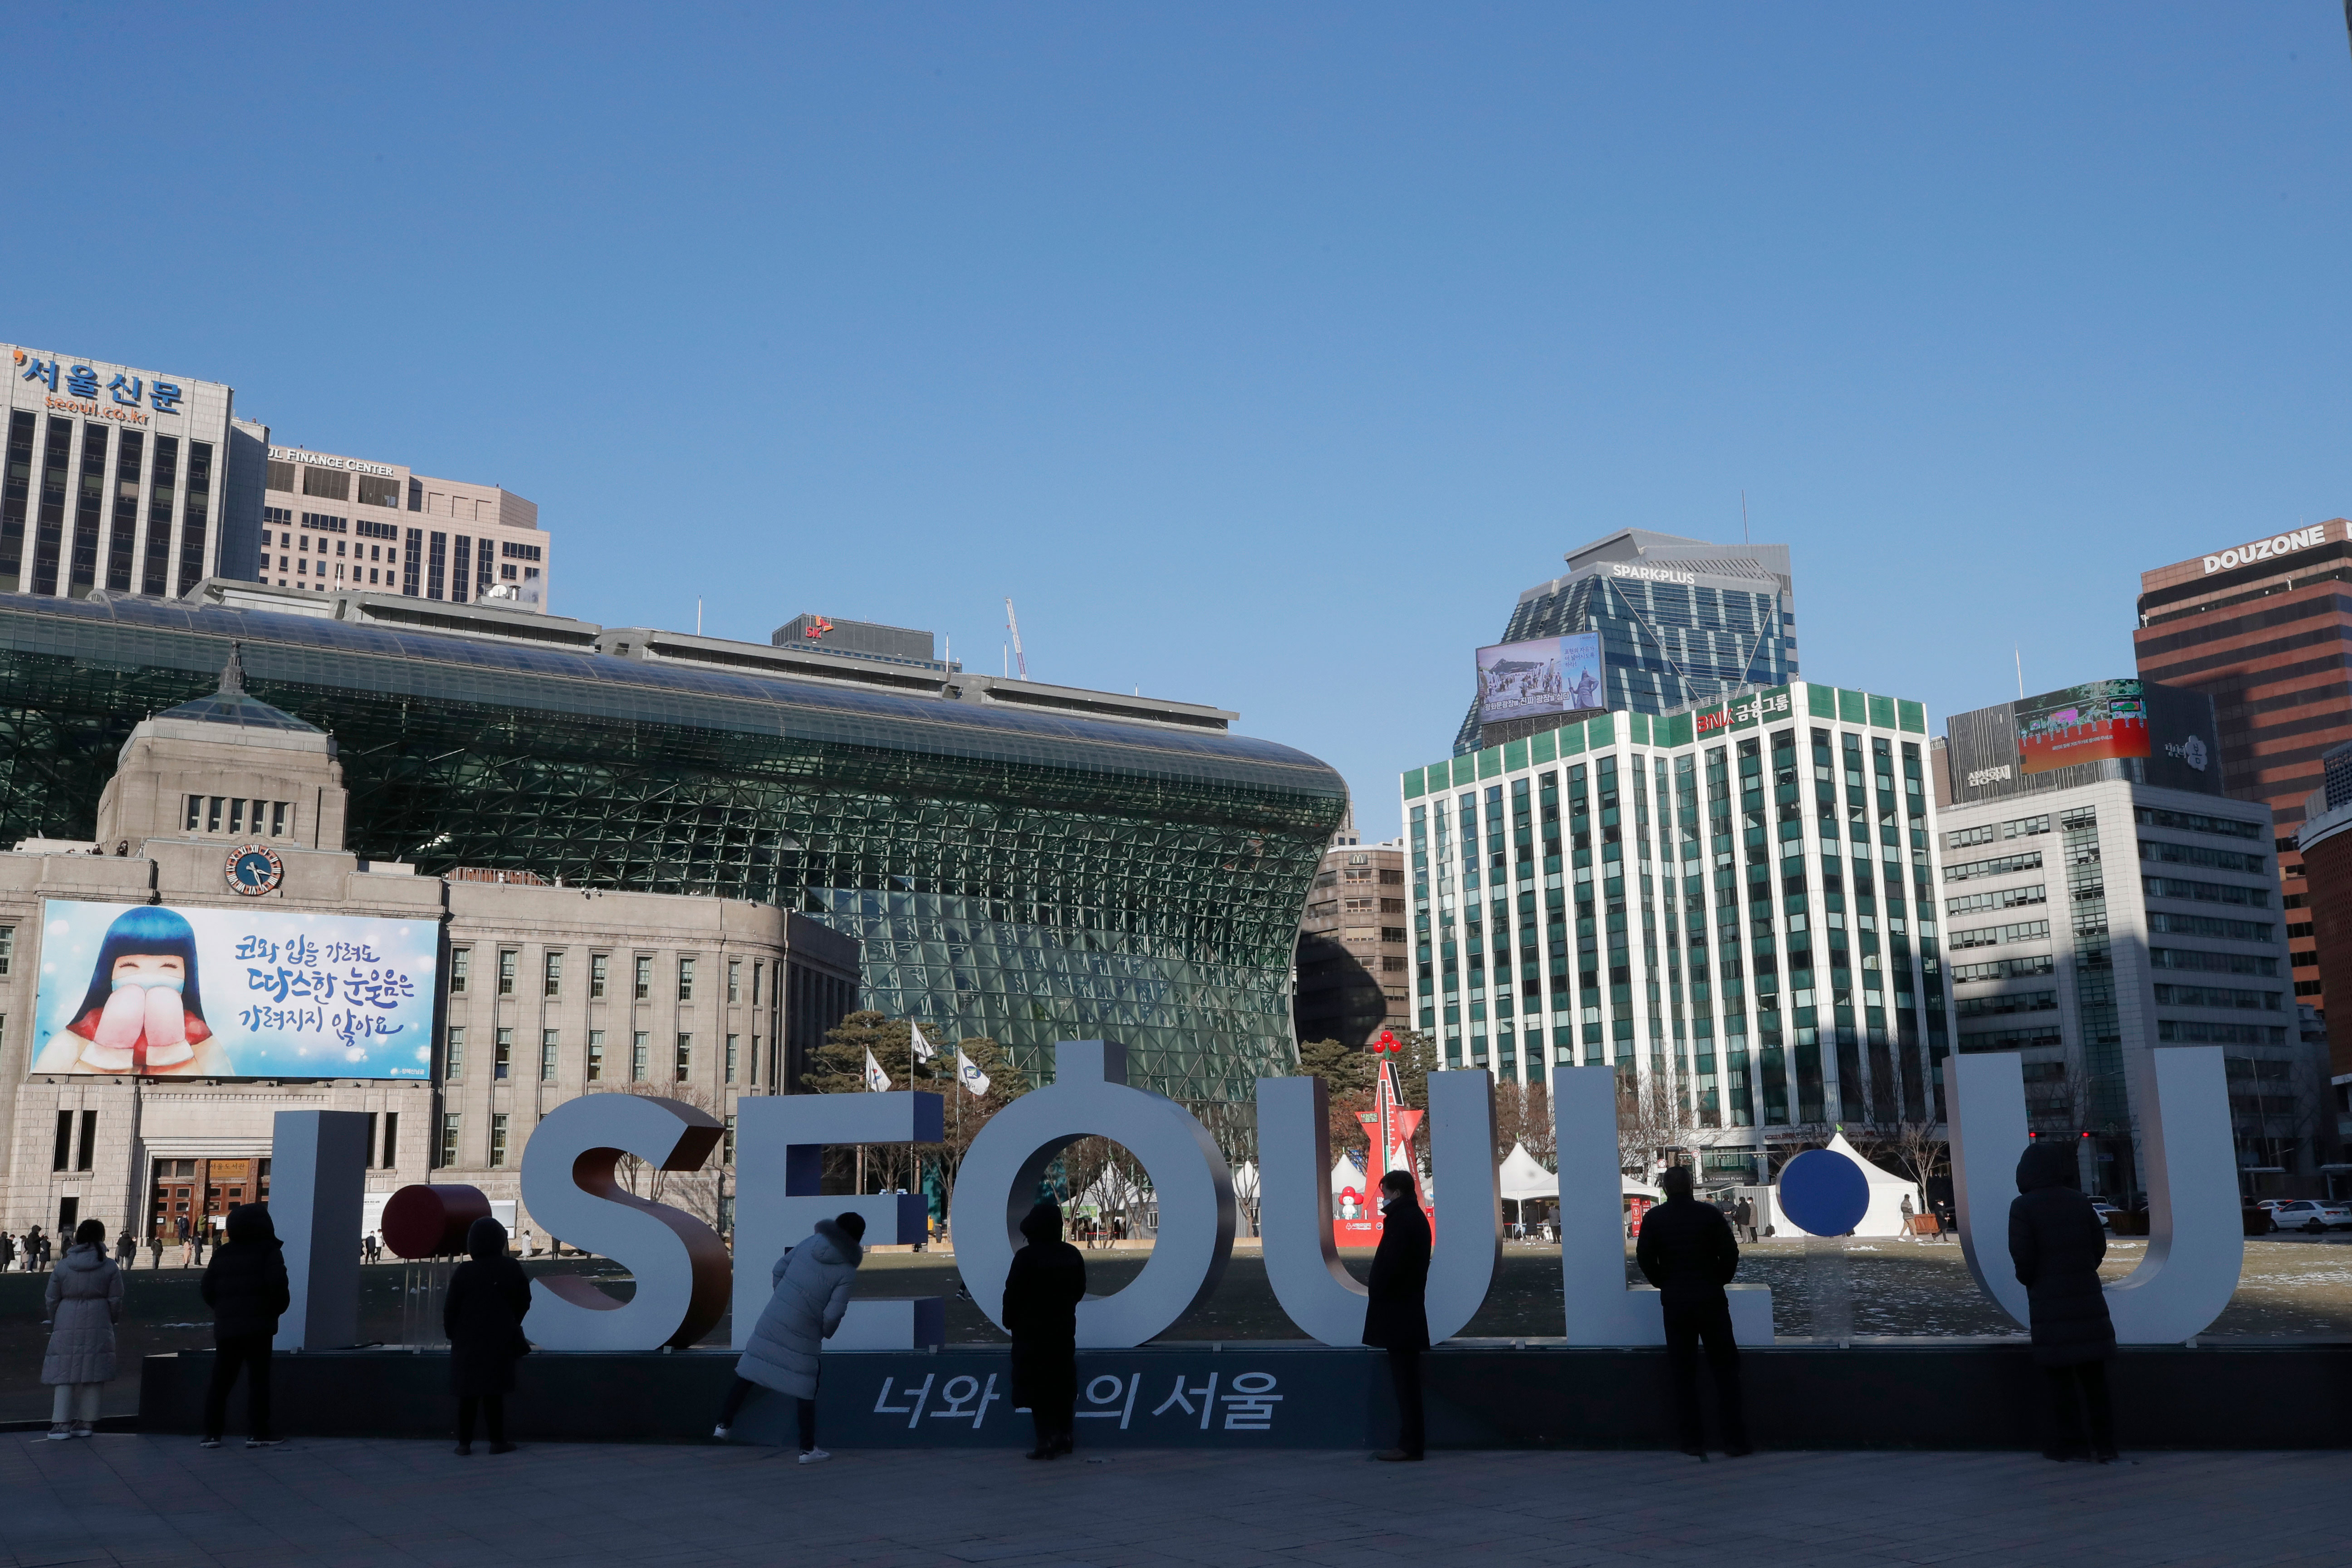 S. Korea's daily COVID cases above 1,000 for 3rd day; lockdown fears trigger panic buying